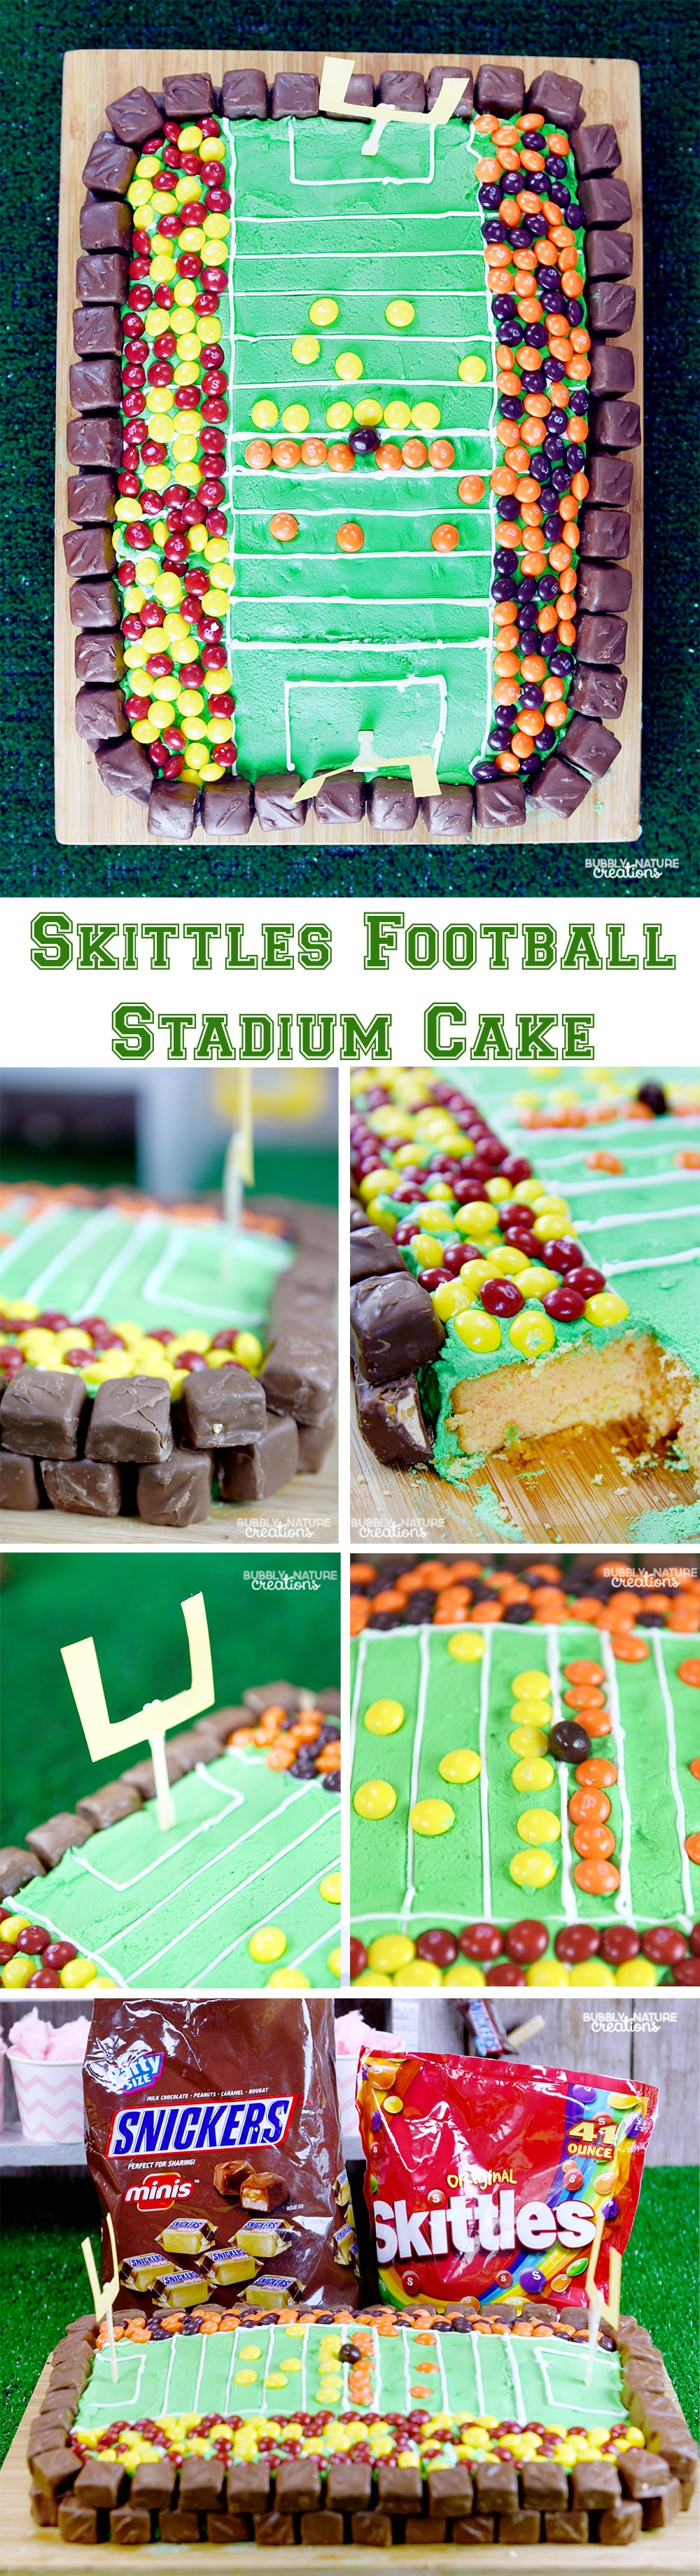 Skittles Football Stadium Cake! Fun and easy cake with a fruity cake that goes well with skittles!